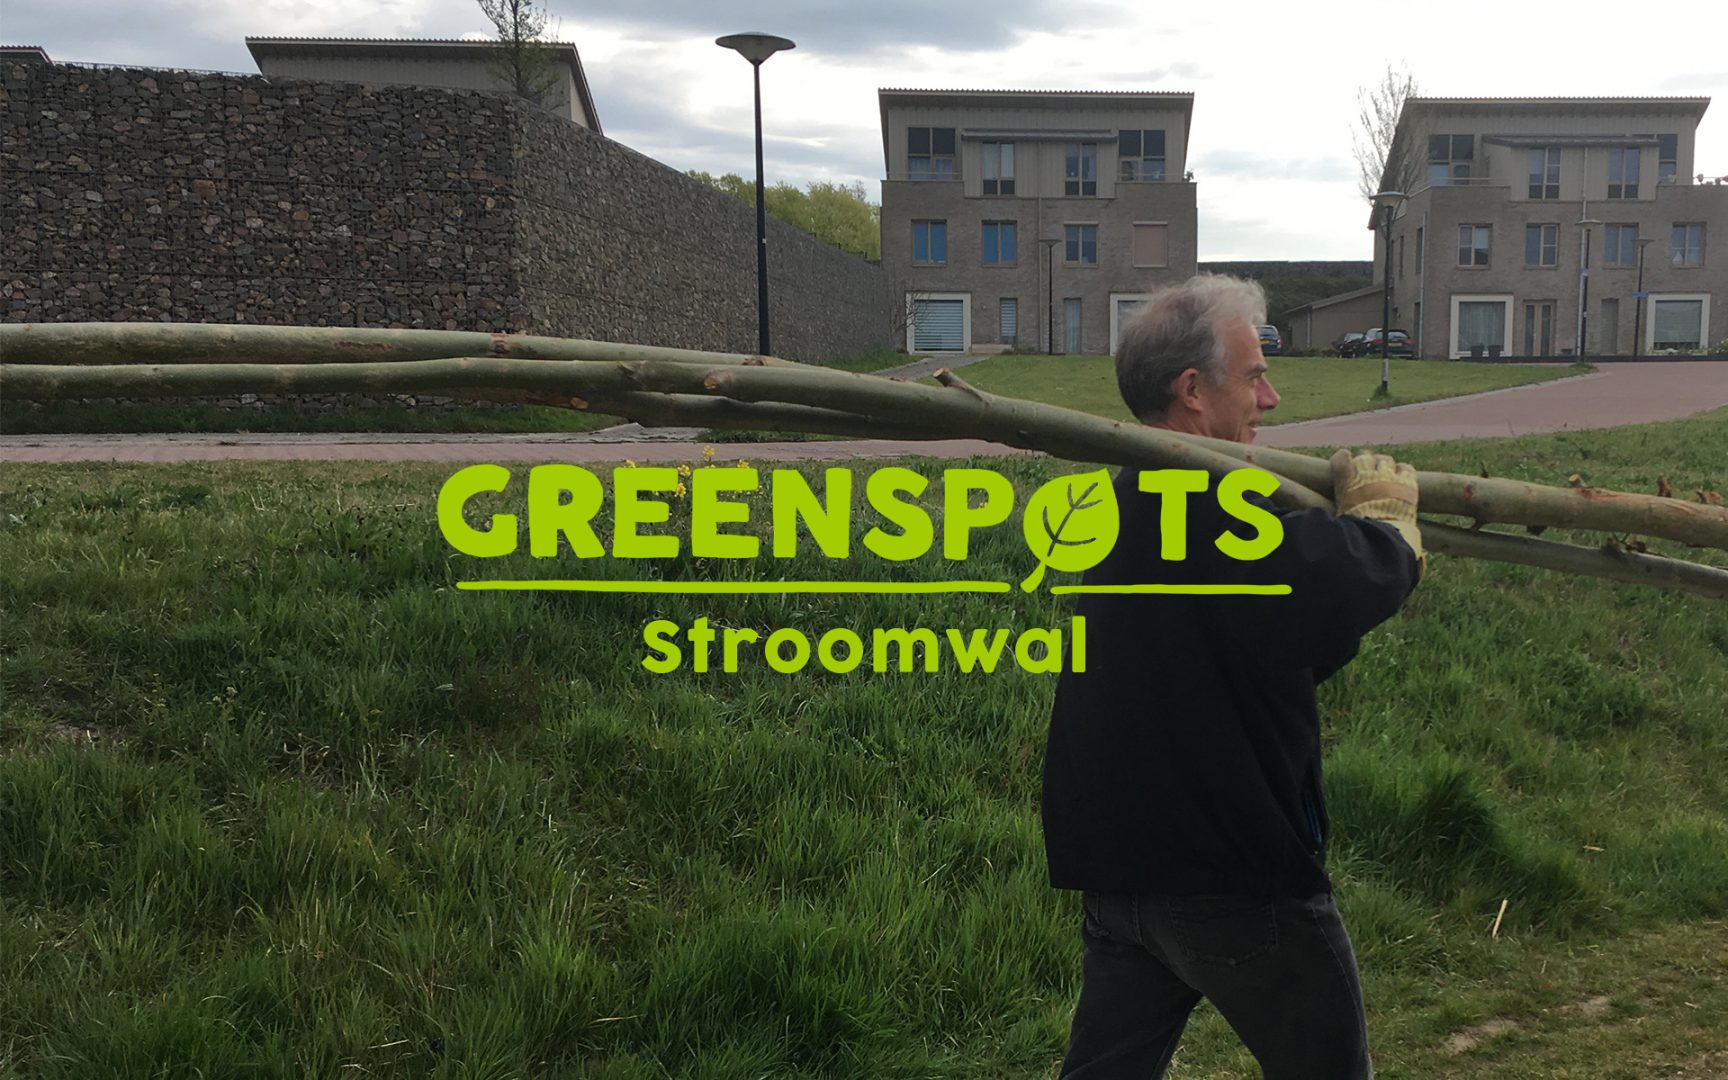 Greenspot Stroomwal